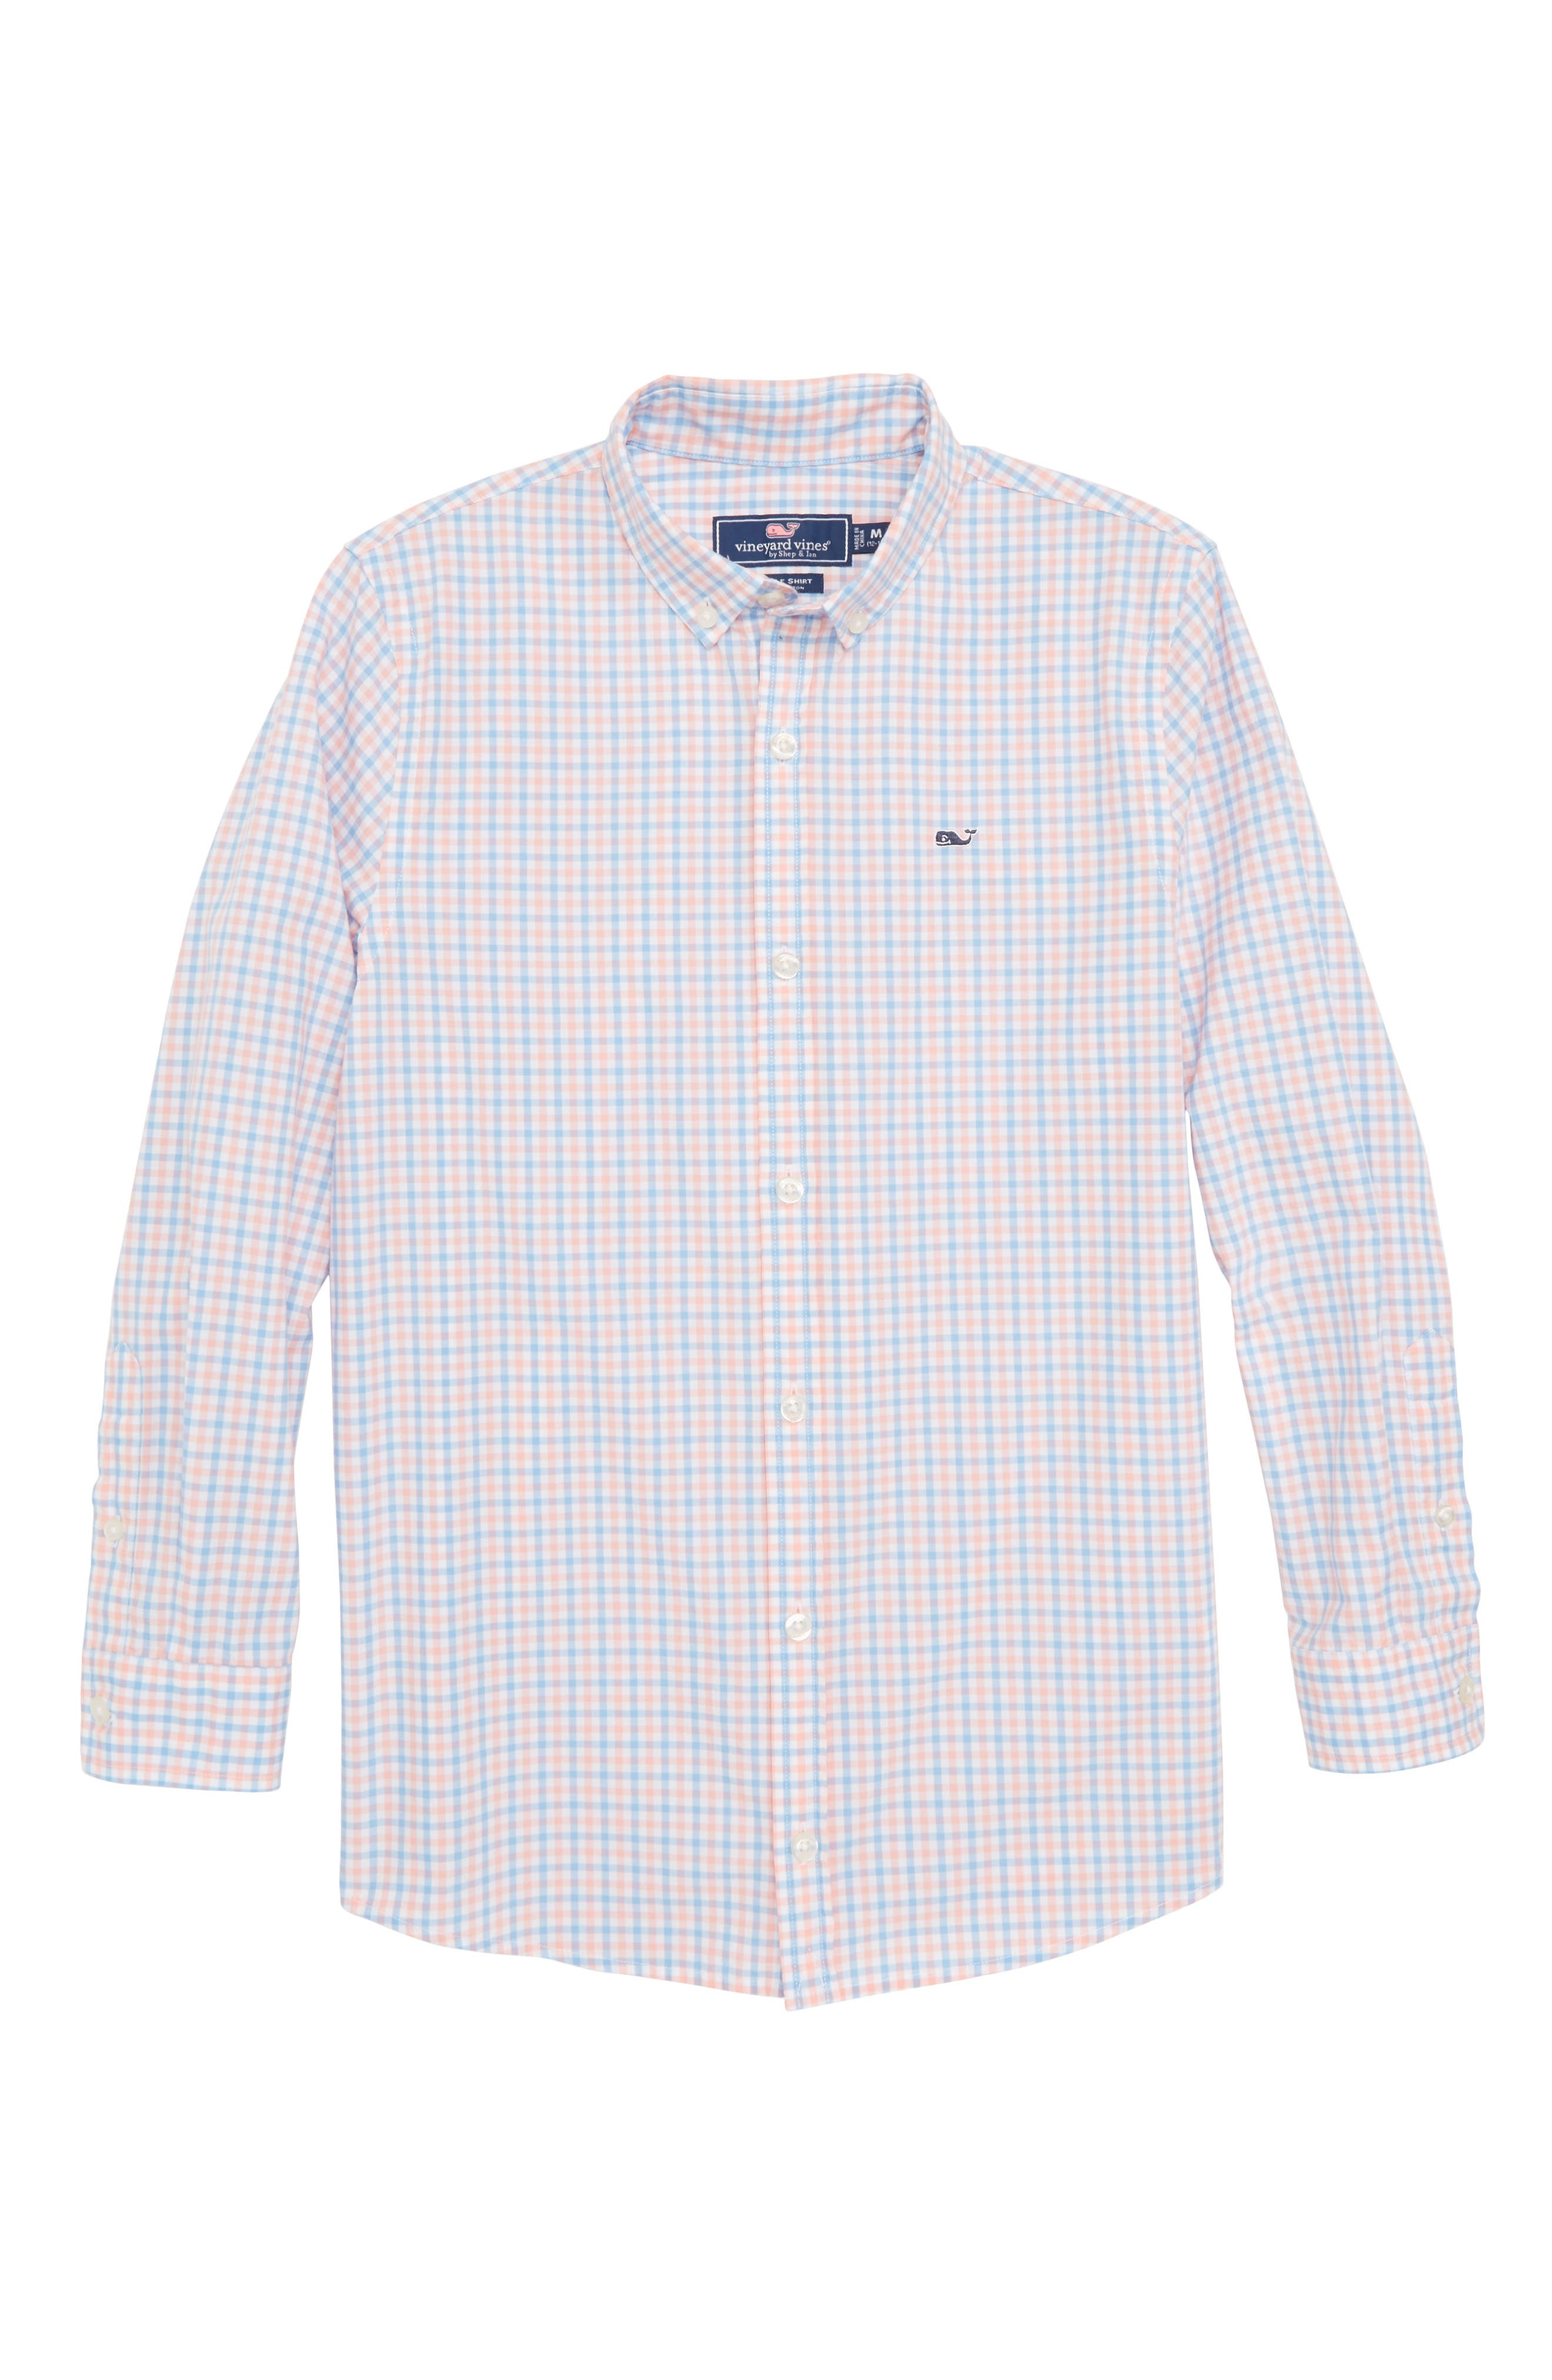 Winding Bay Gingham Woven Shirt,                         Main,                         color, Bright Peach